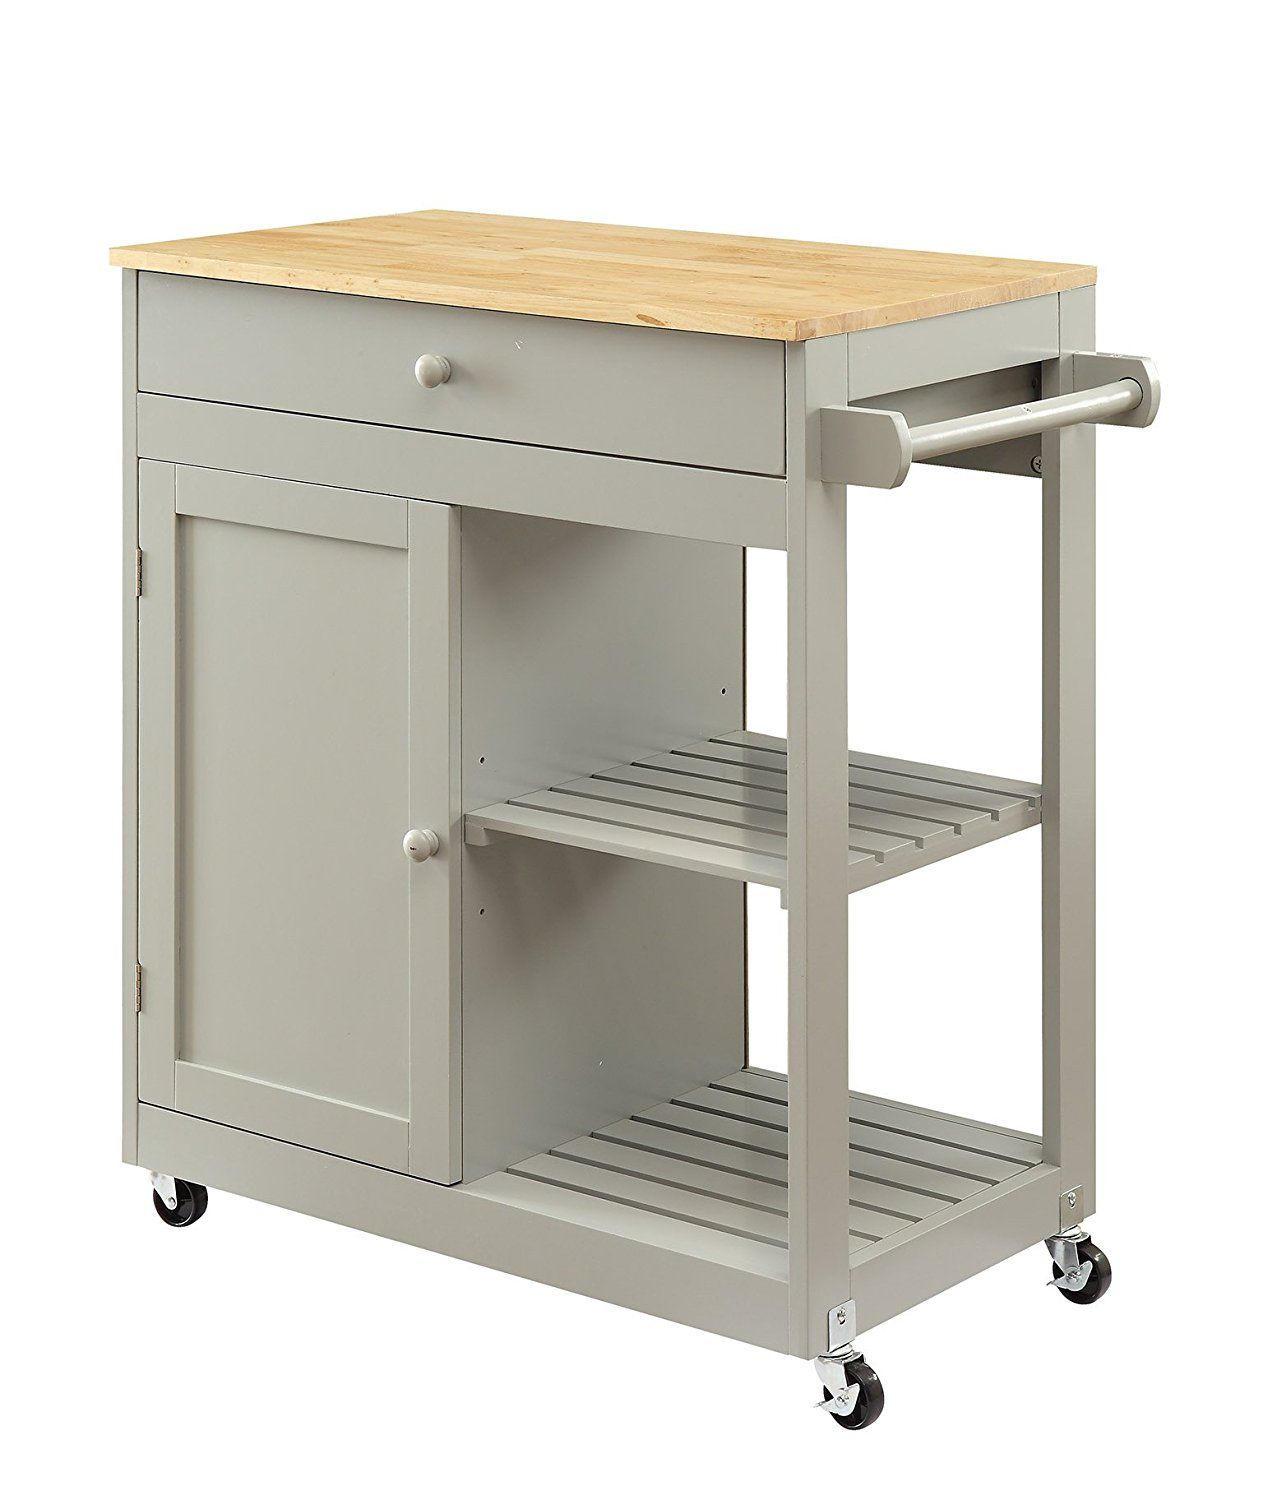 Oliver And Smith Nashville Collection Mobile Kitchen Island Cart On Wheels  Wooden Grey Natural Oak Butcher Block 30 W X 17 L X 36 H * Check This  Awesome ...